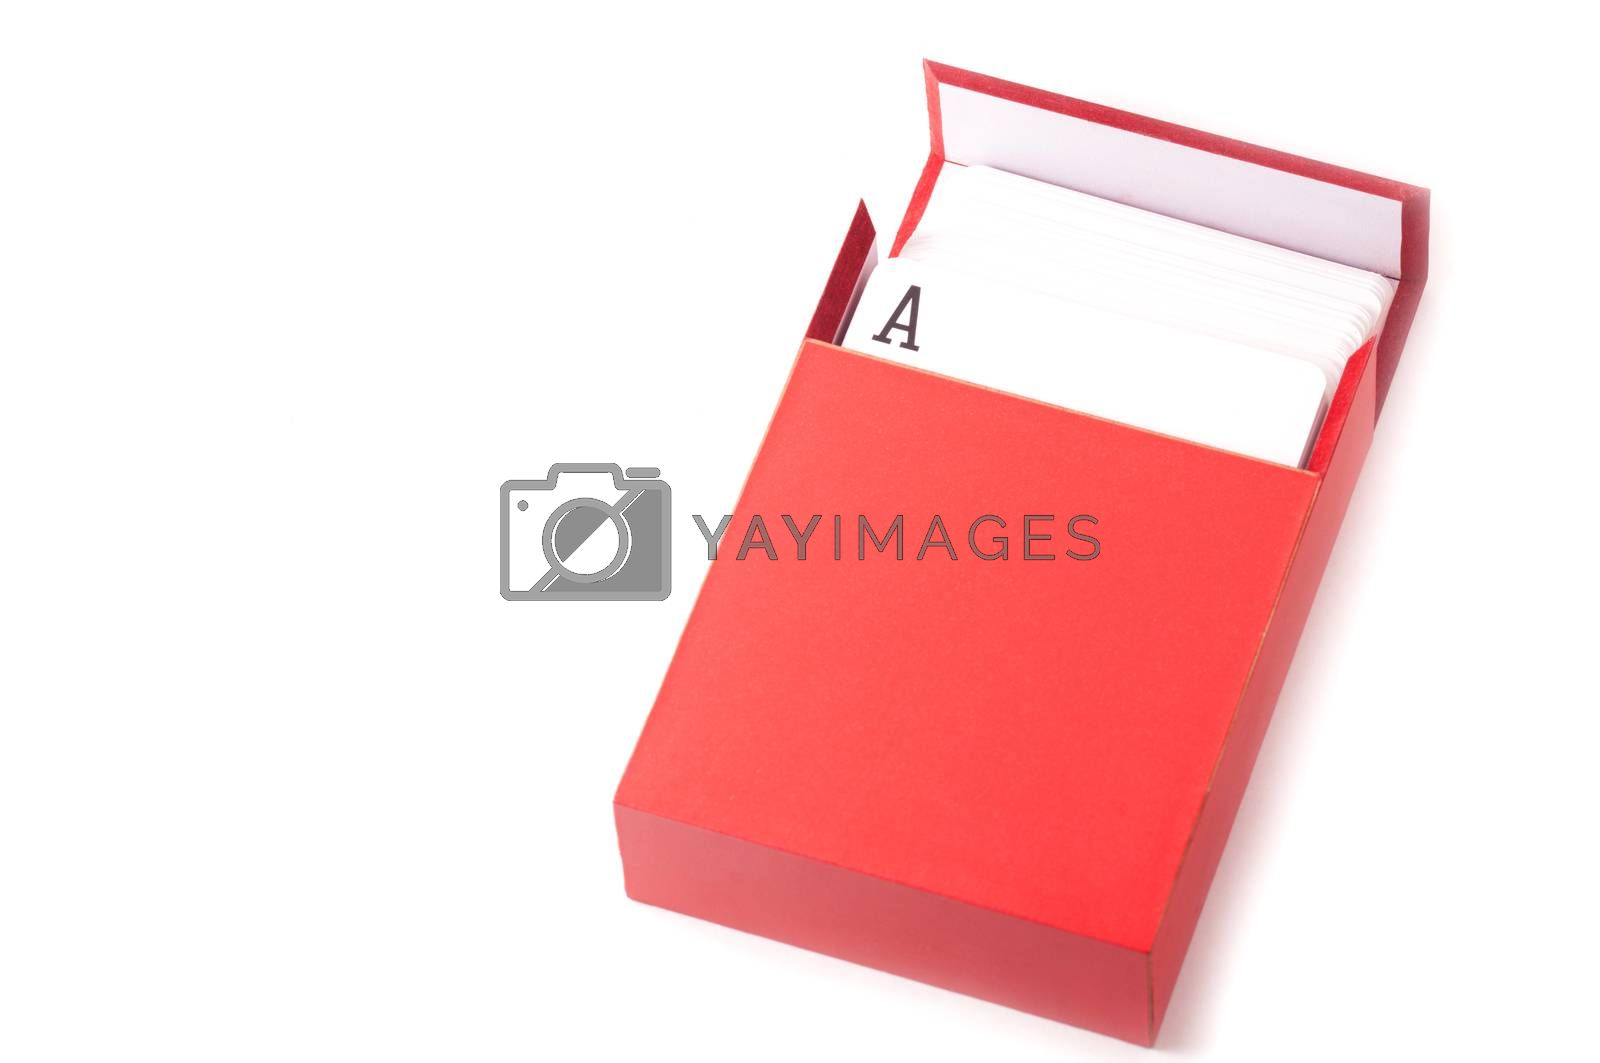 A pack of card inside a red box isolated on white background